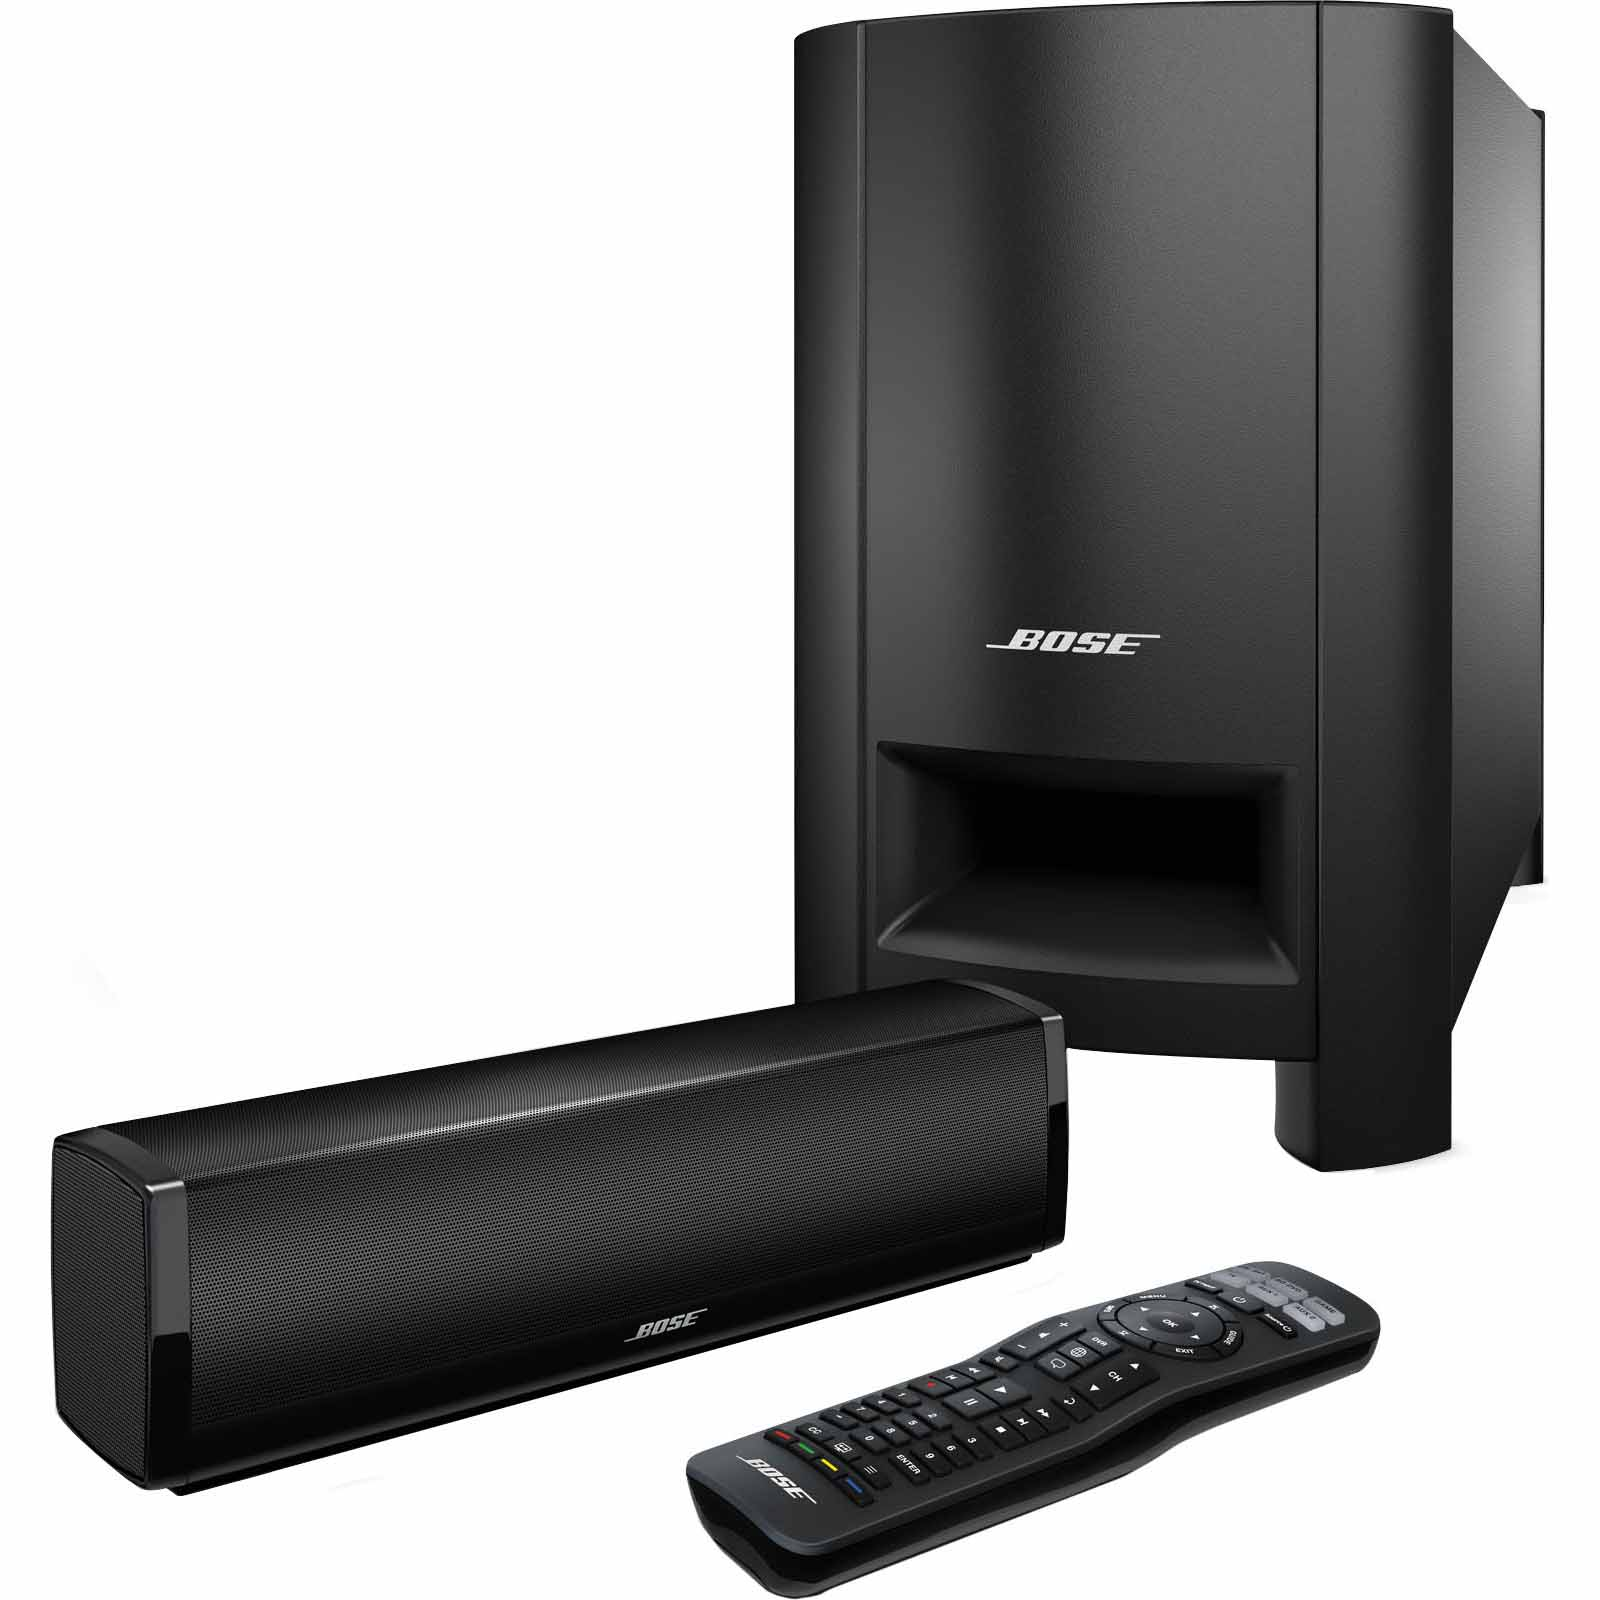 bose home theater speaker usa. Black Bedroom Furniture Sets. Home Design Ideas